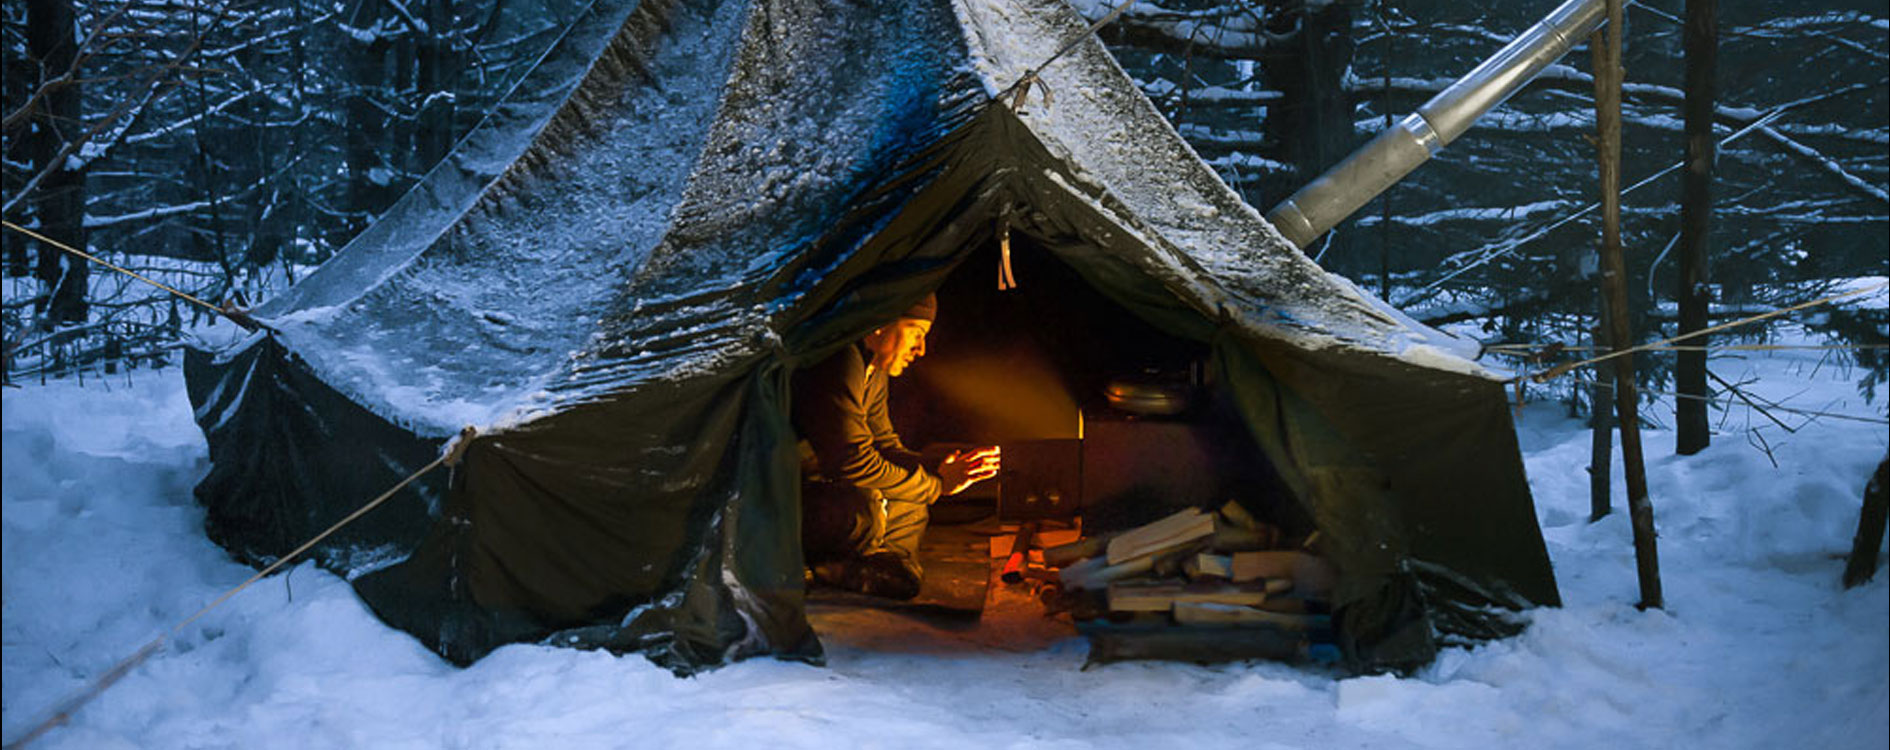 Winter Camping In Algonquin Park Algonquin Outfitters